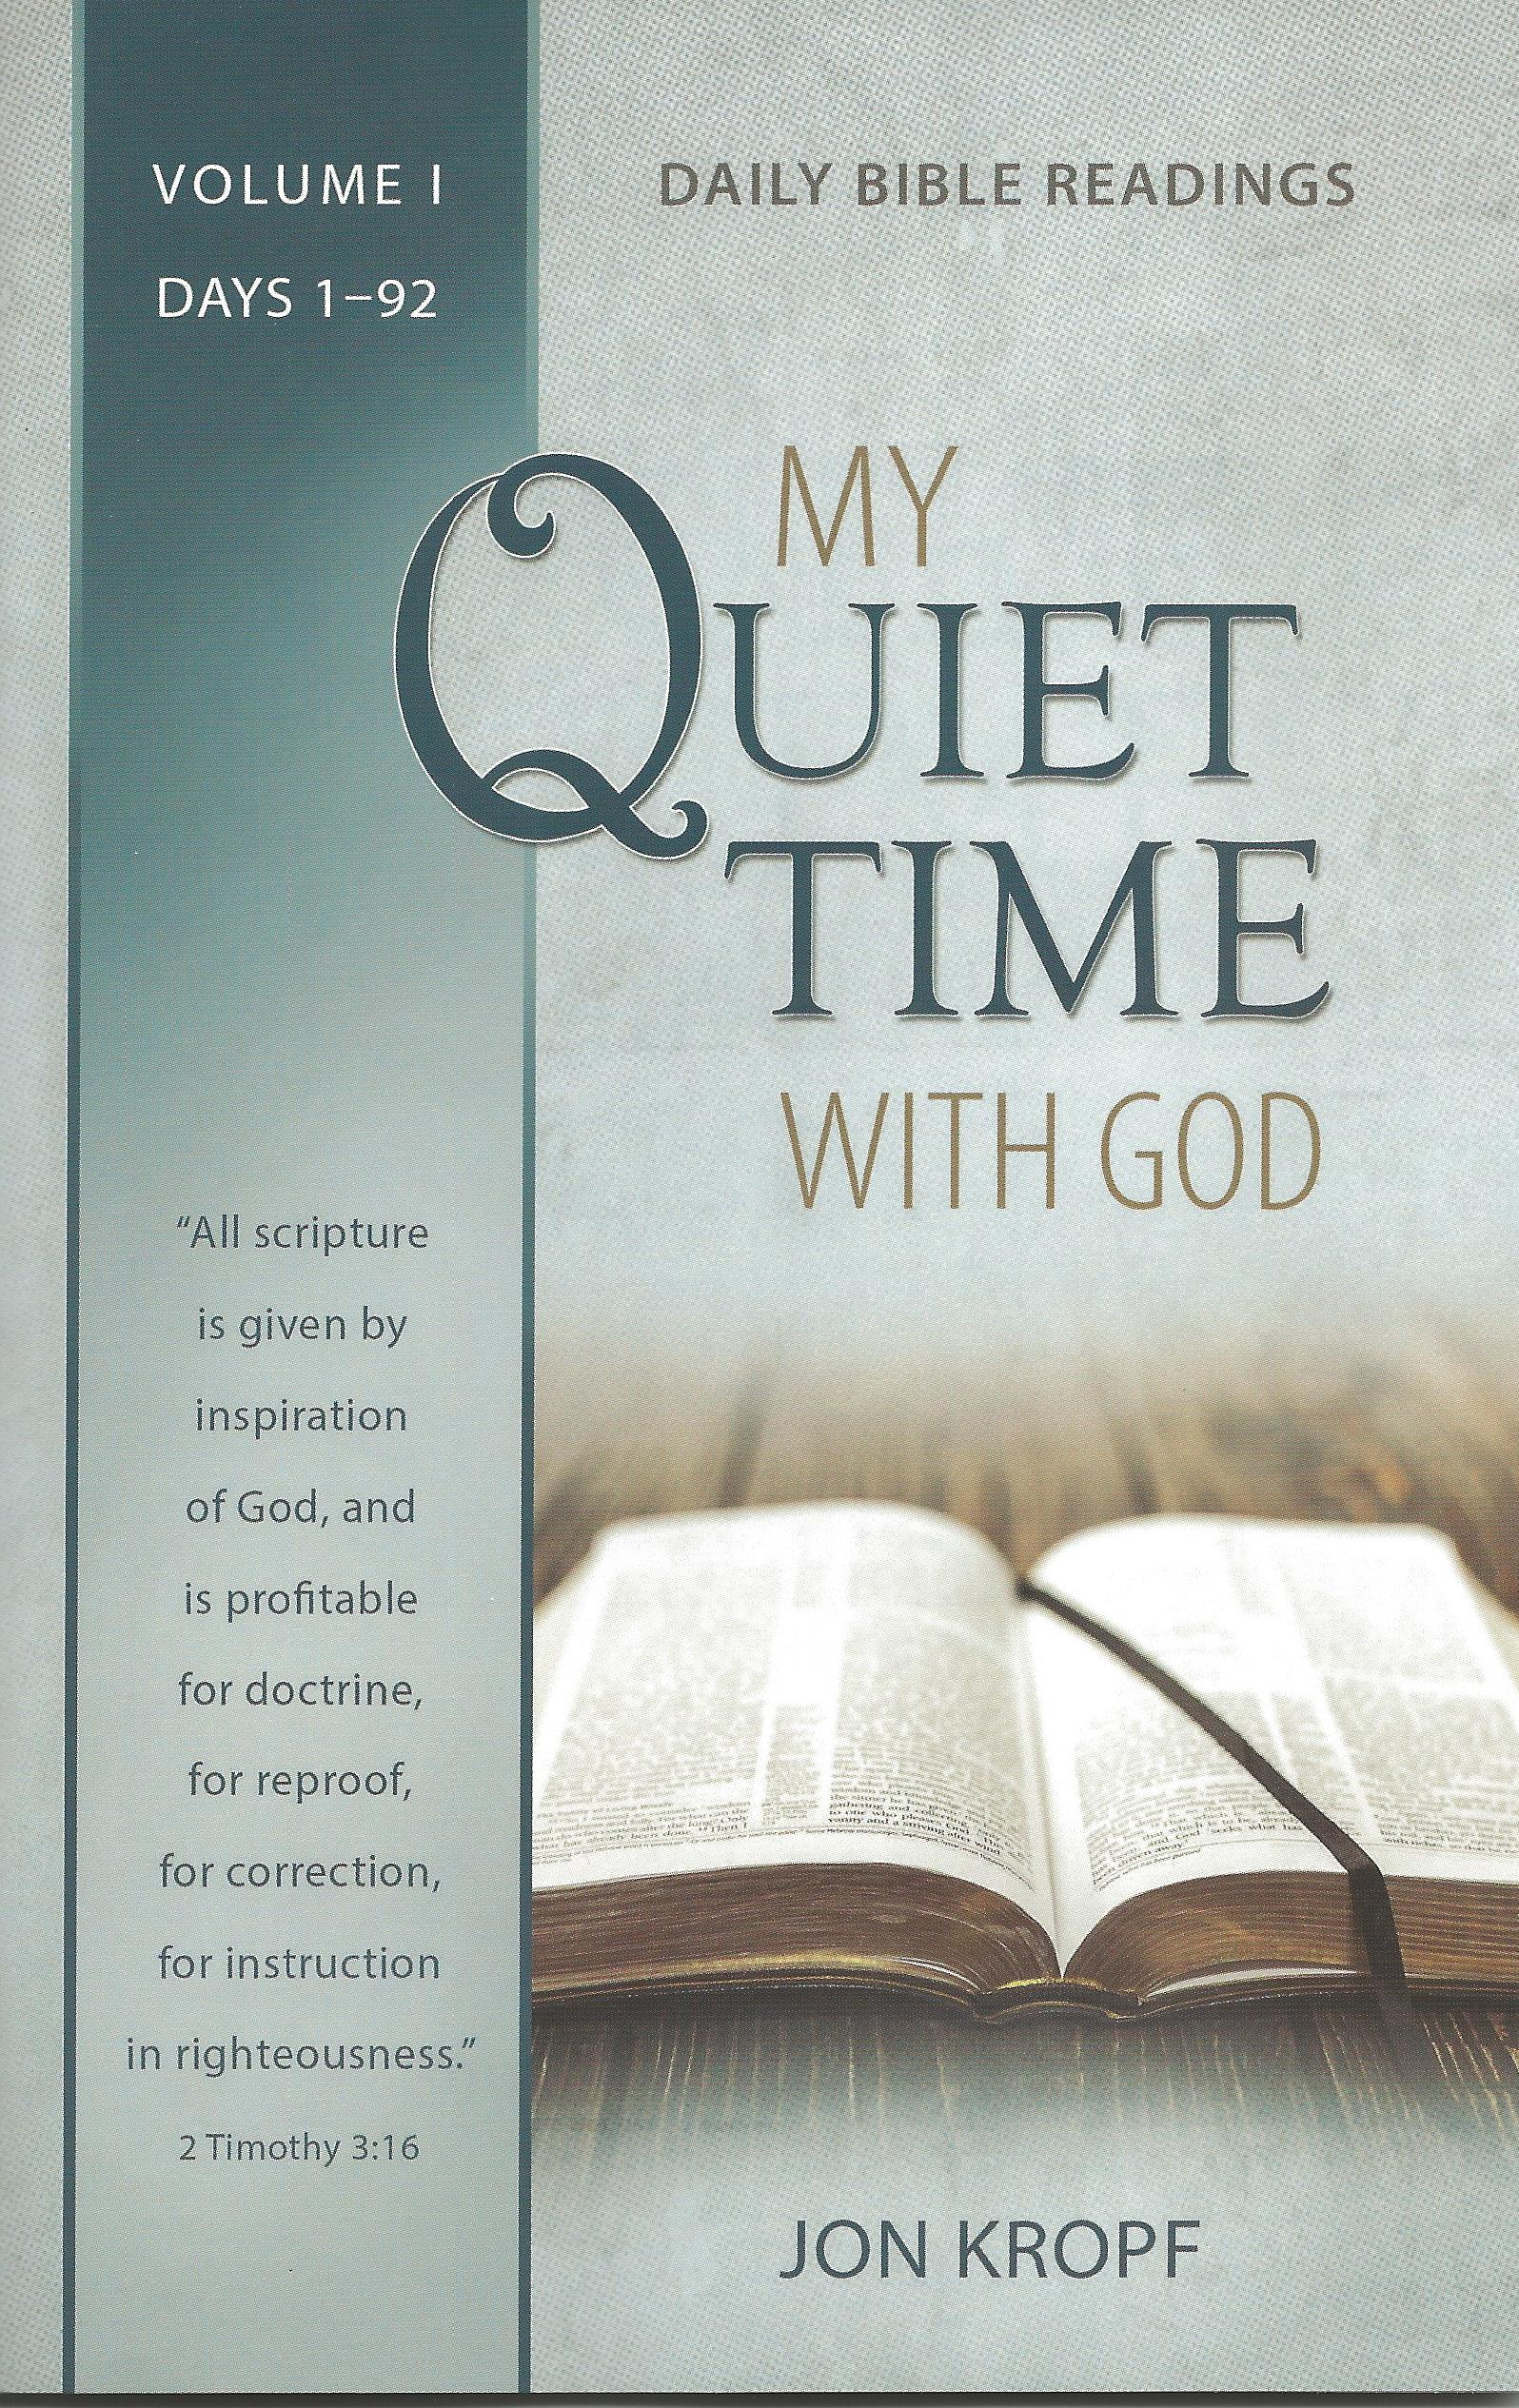 MY QUIET TIME WITH GOD VOL. I Jon Kropf